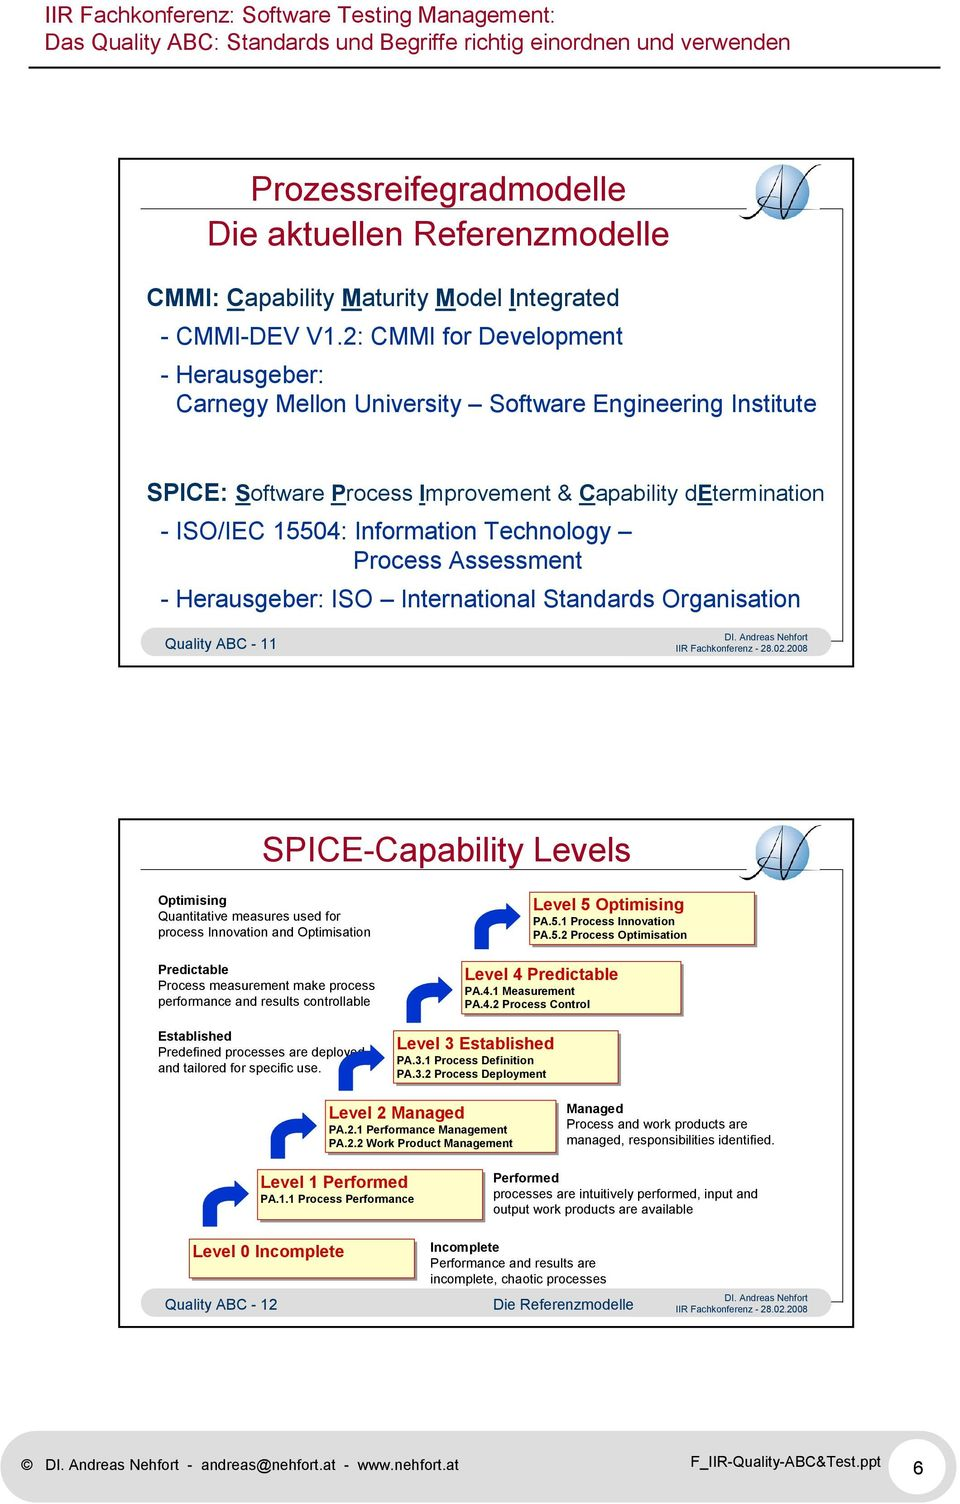 Process Assessment - Herausgeber: ISO International Standards Organisation Quality ABC - 11 SPICE-Capability Levels Optimising Quantitative measures used for process Innovation and Optimisation